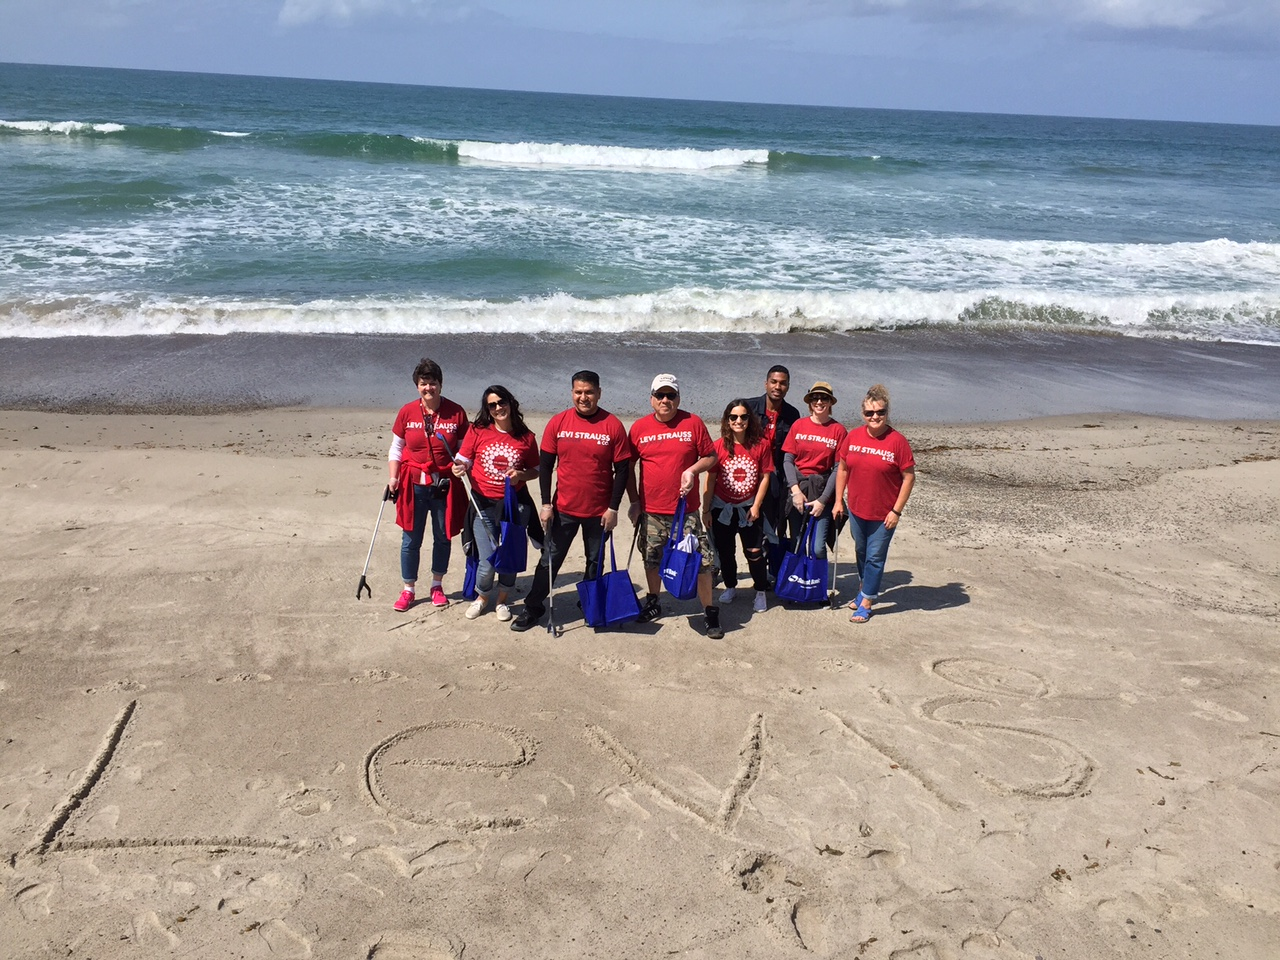 Levi Strauss cleaning up San Clemente Beach